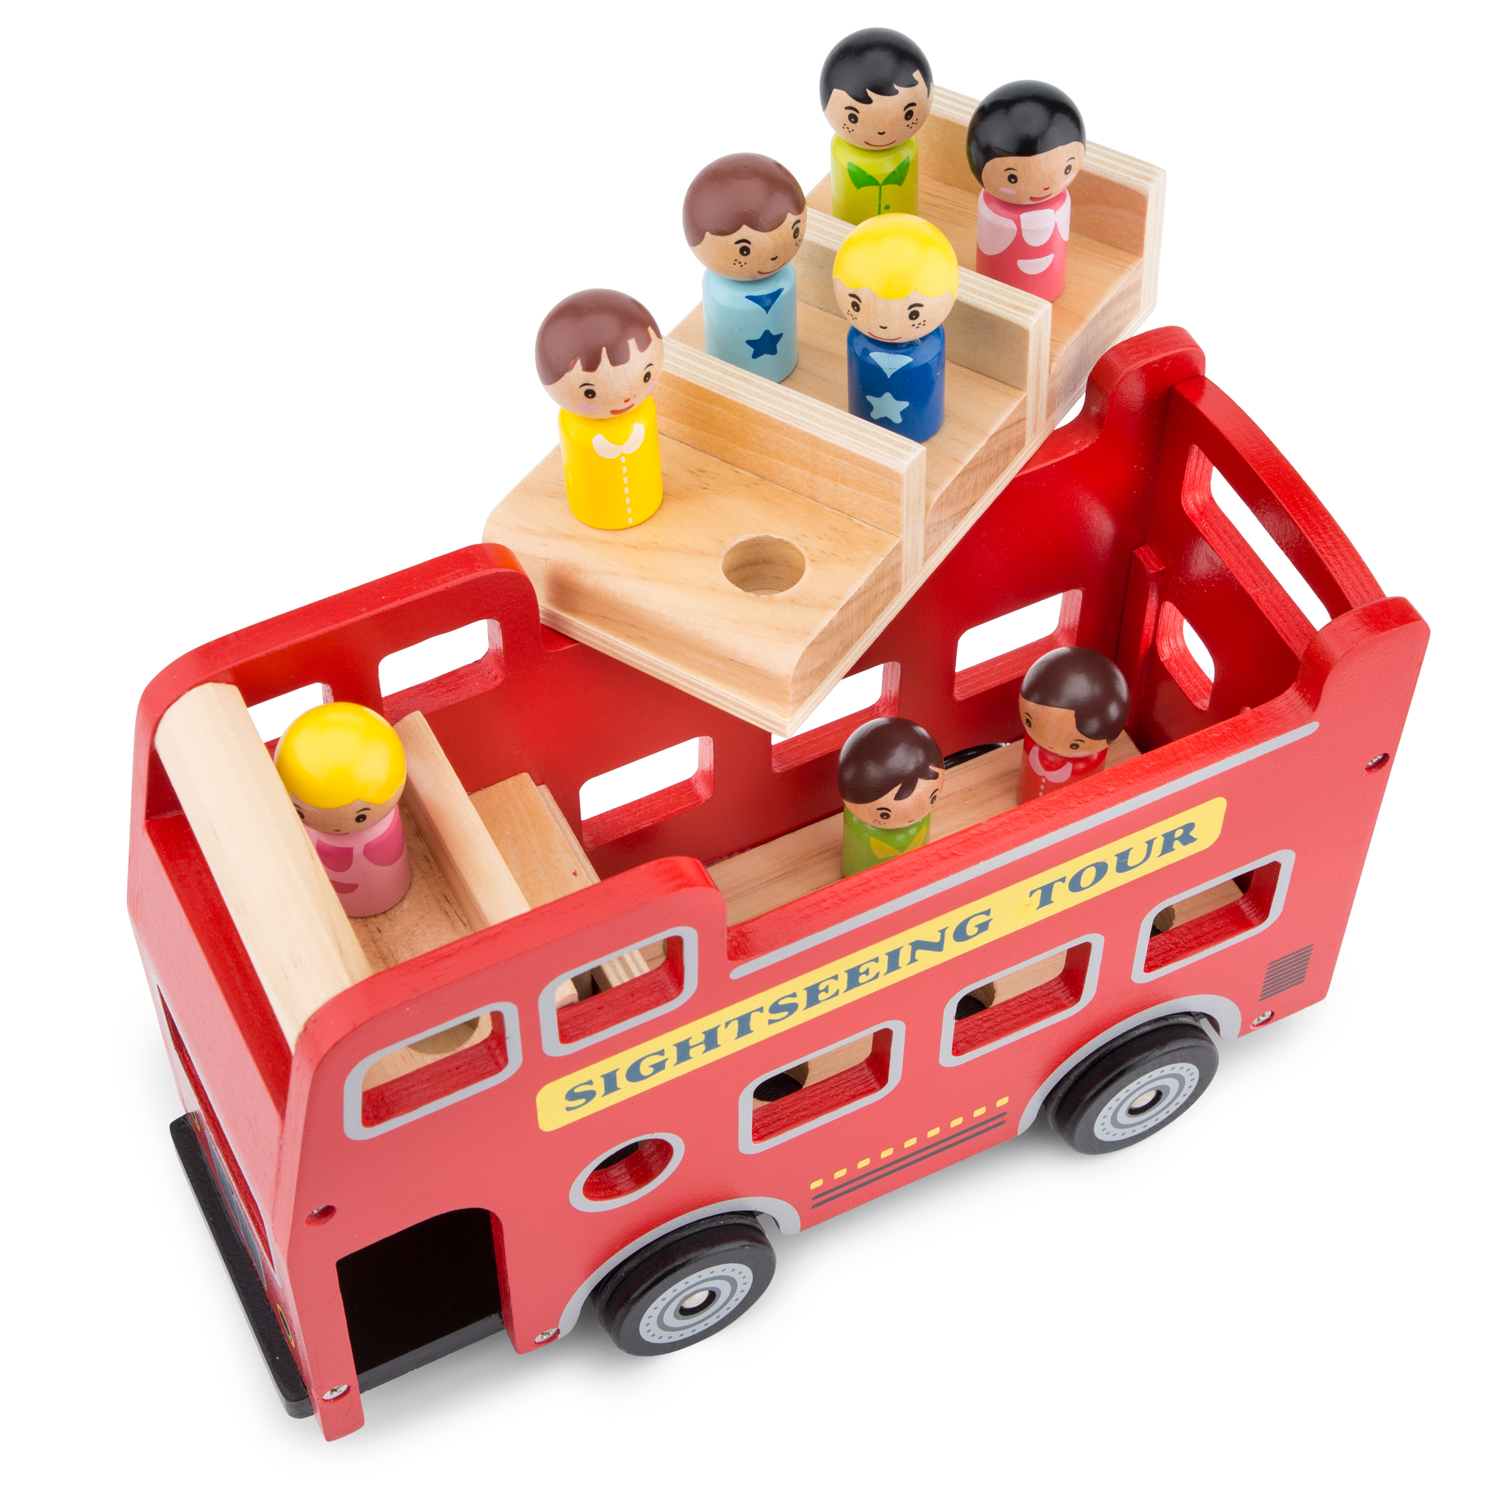 Wooden Toy Cars >> New Classic Toys - City Tour Bus with 9 Play Figures | New ...